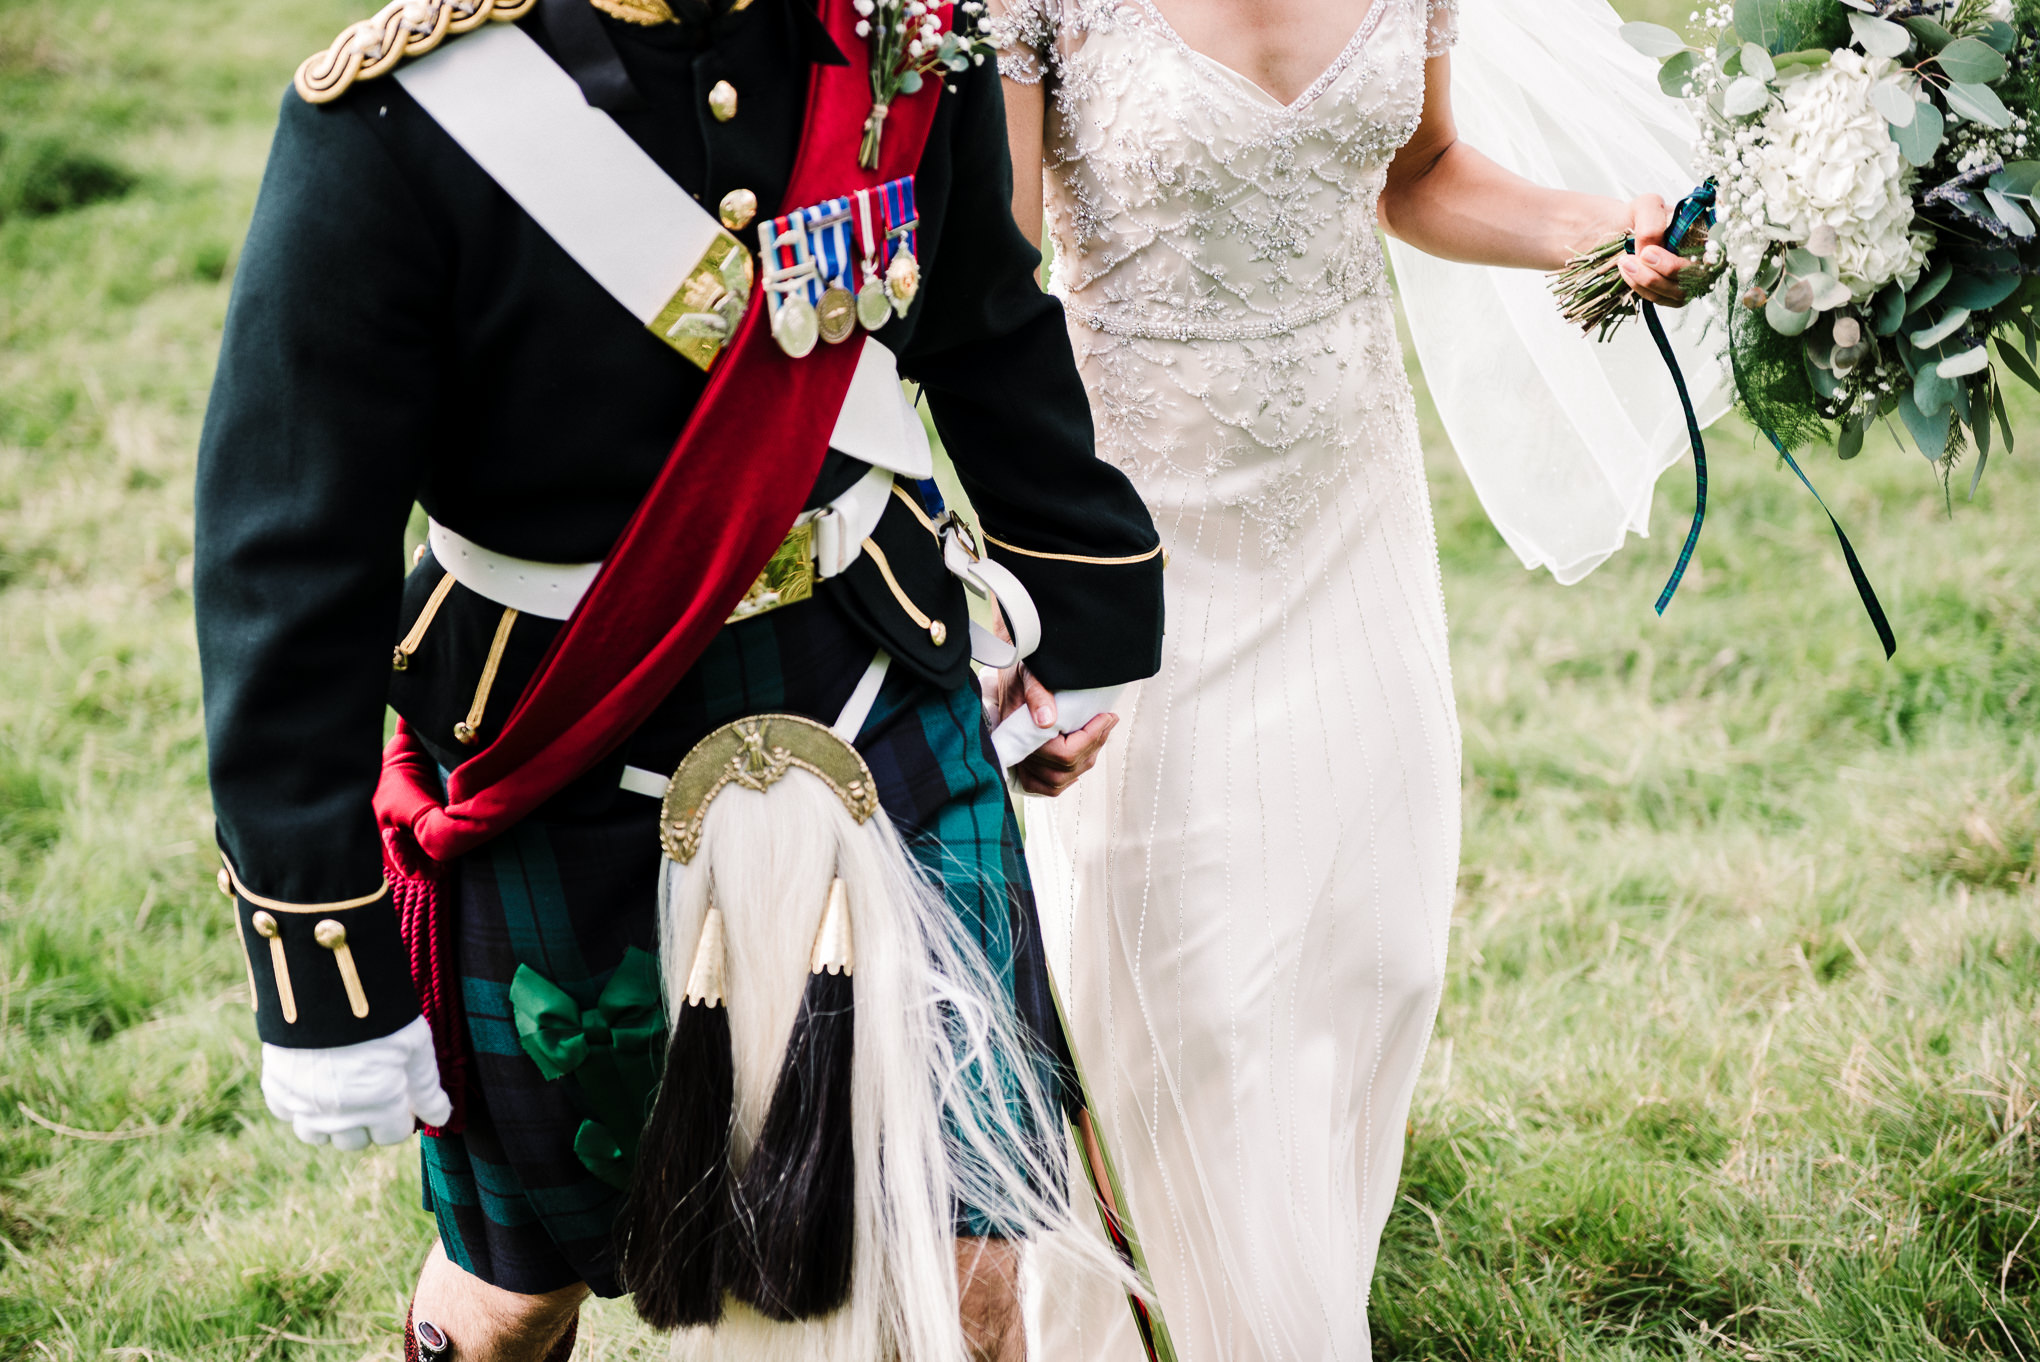 Close up photo of grooms military uniform.